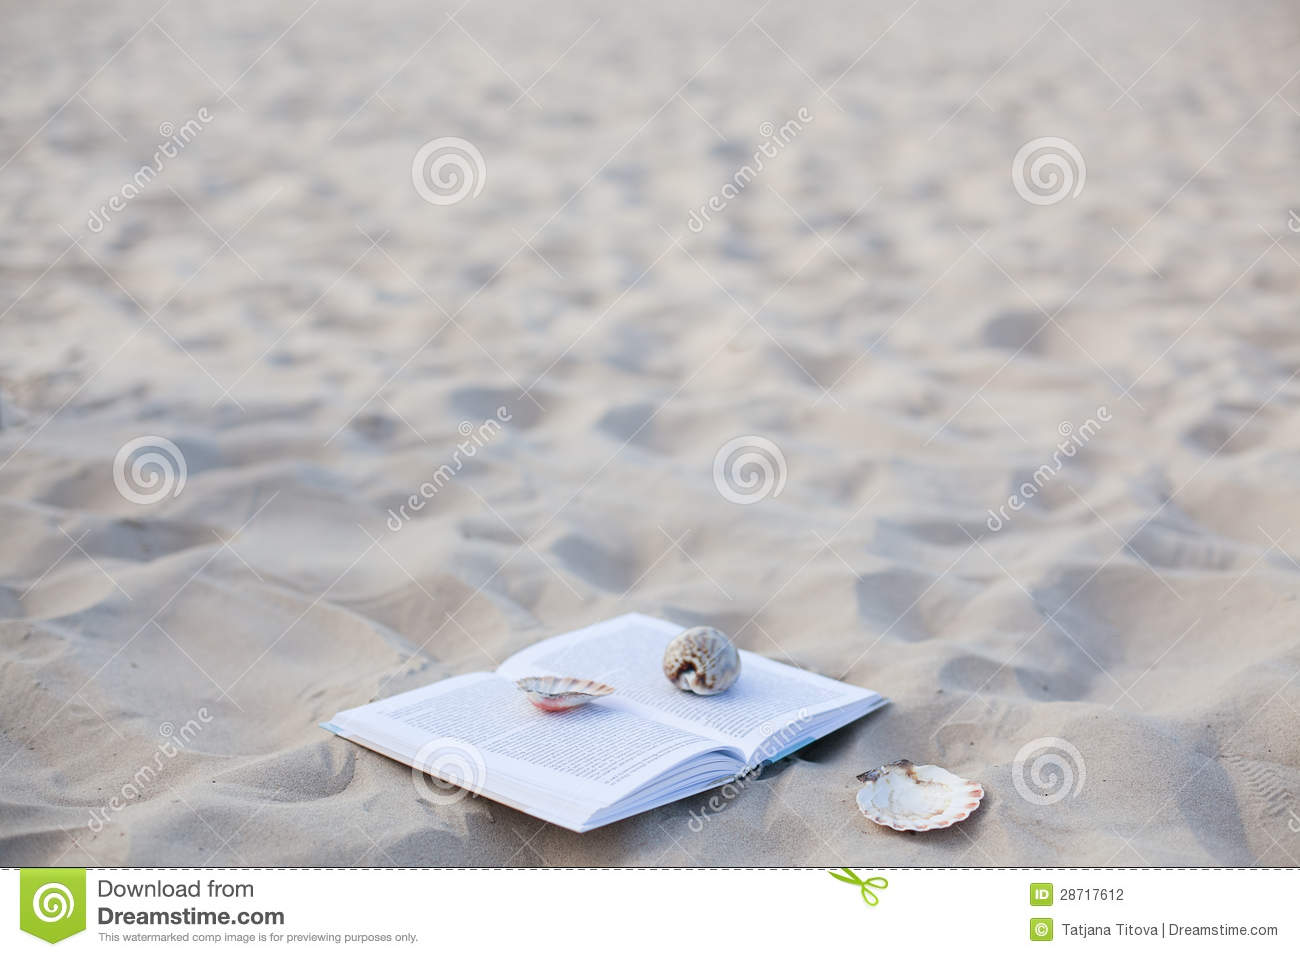 The book with cockleshells on white sea sand